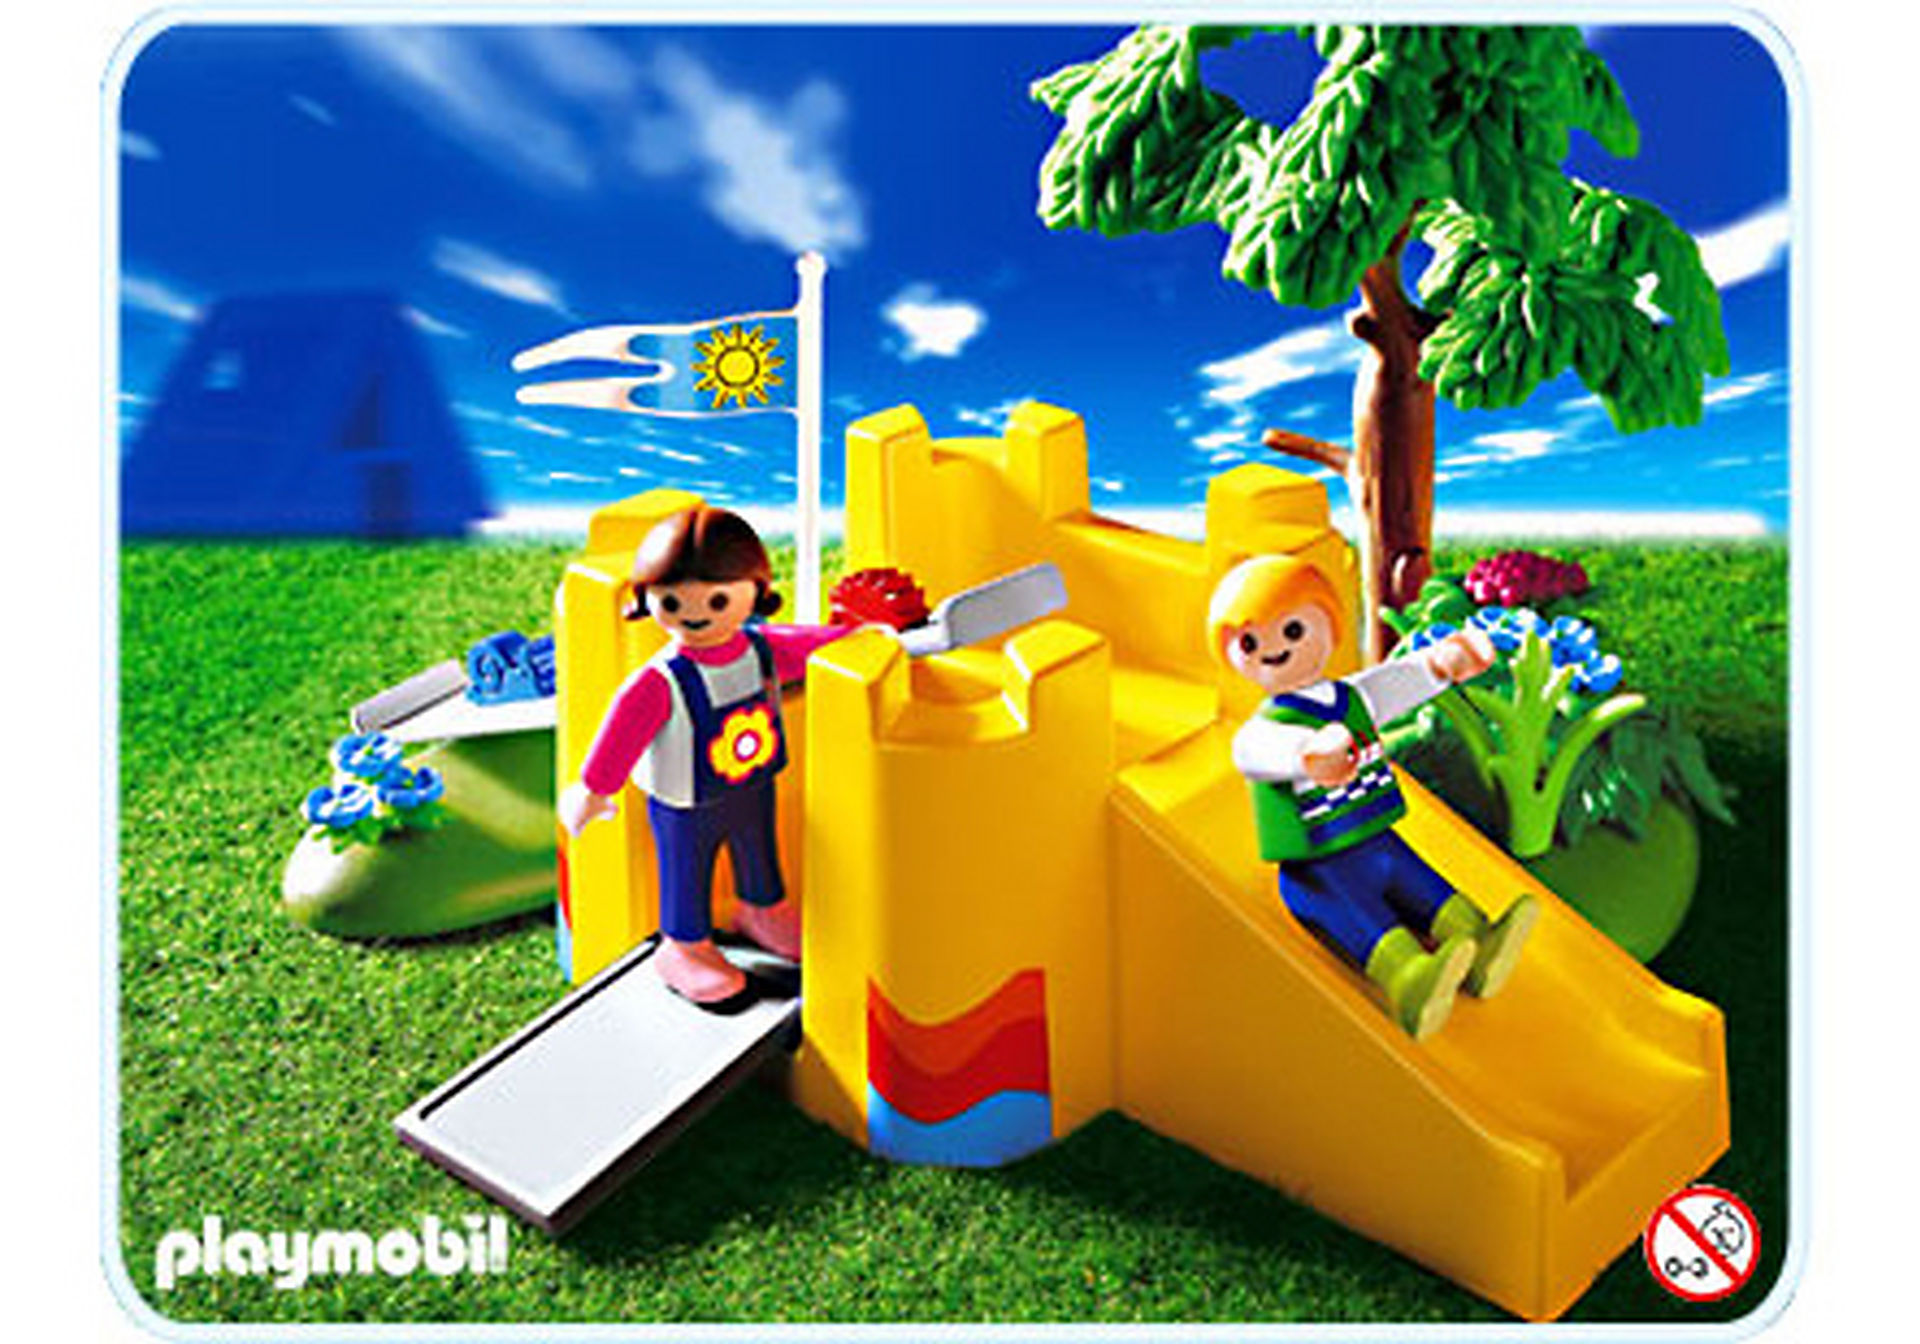 http://media.playmobil.com/i/playmobil/3235-B_product_detail/Kinderspielburg